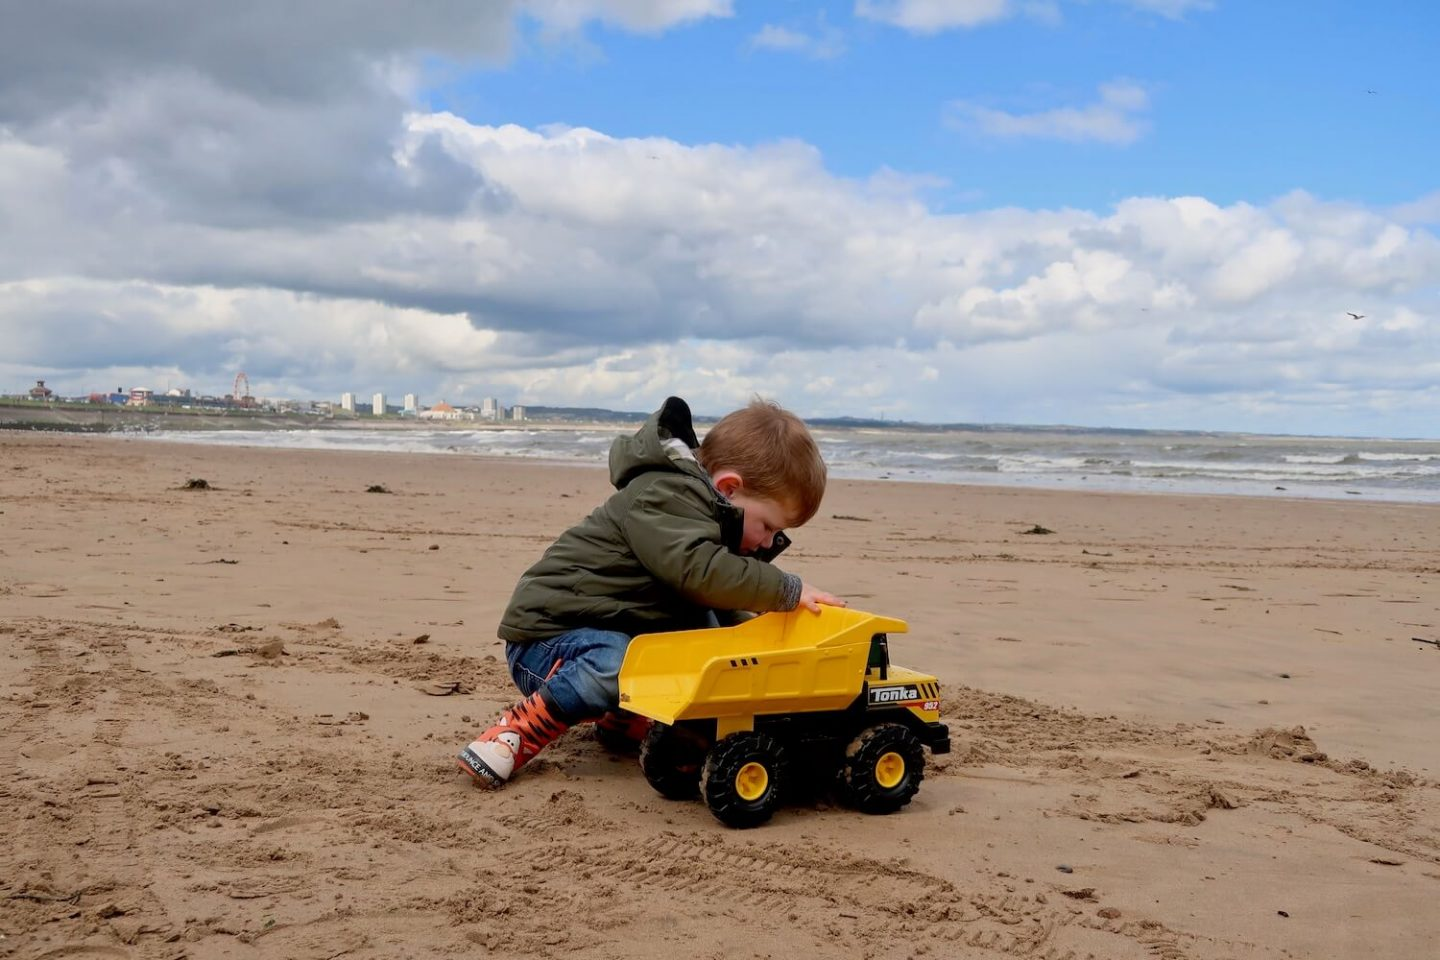 A child with a yellow Tonka truck on the beach